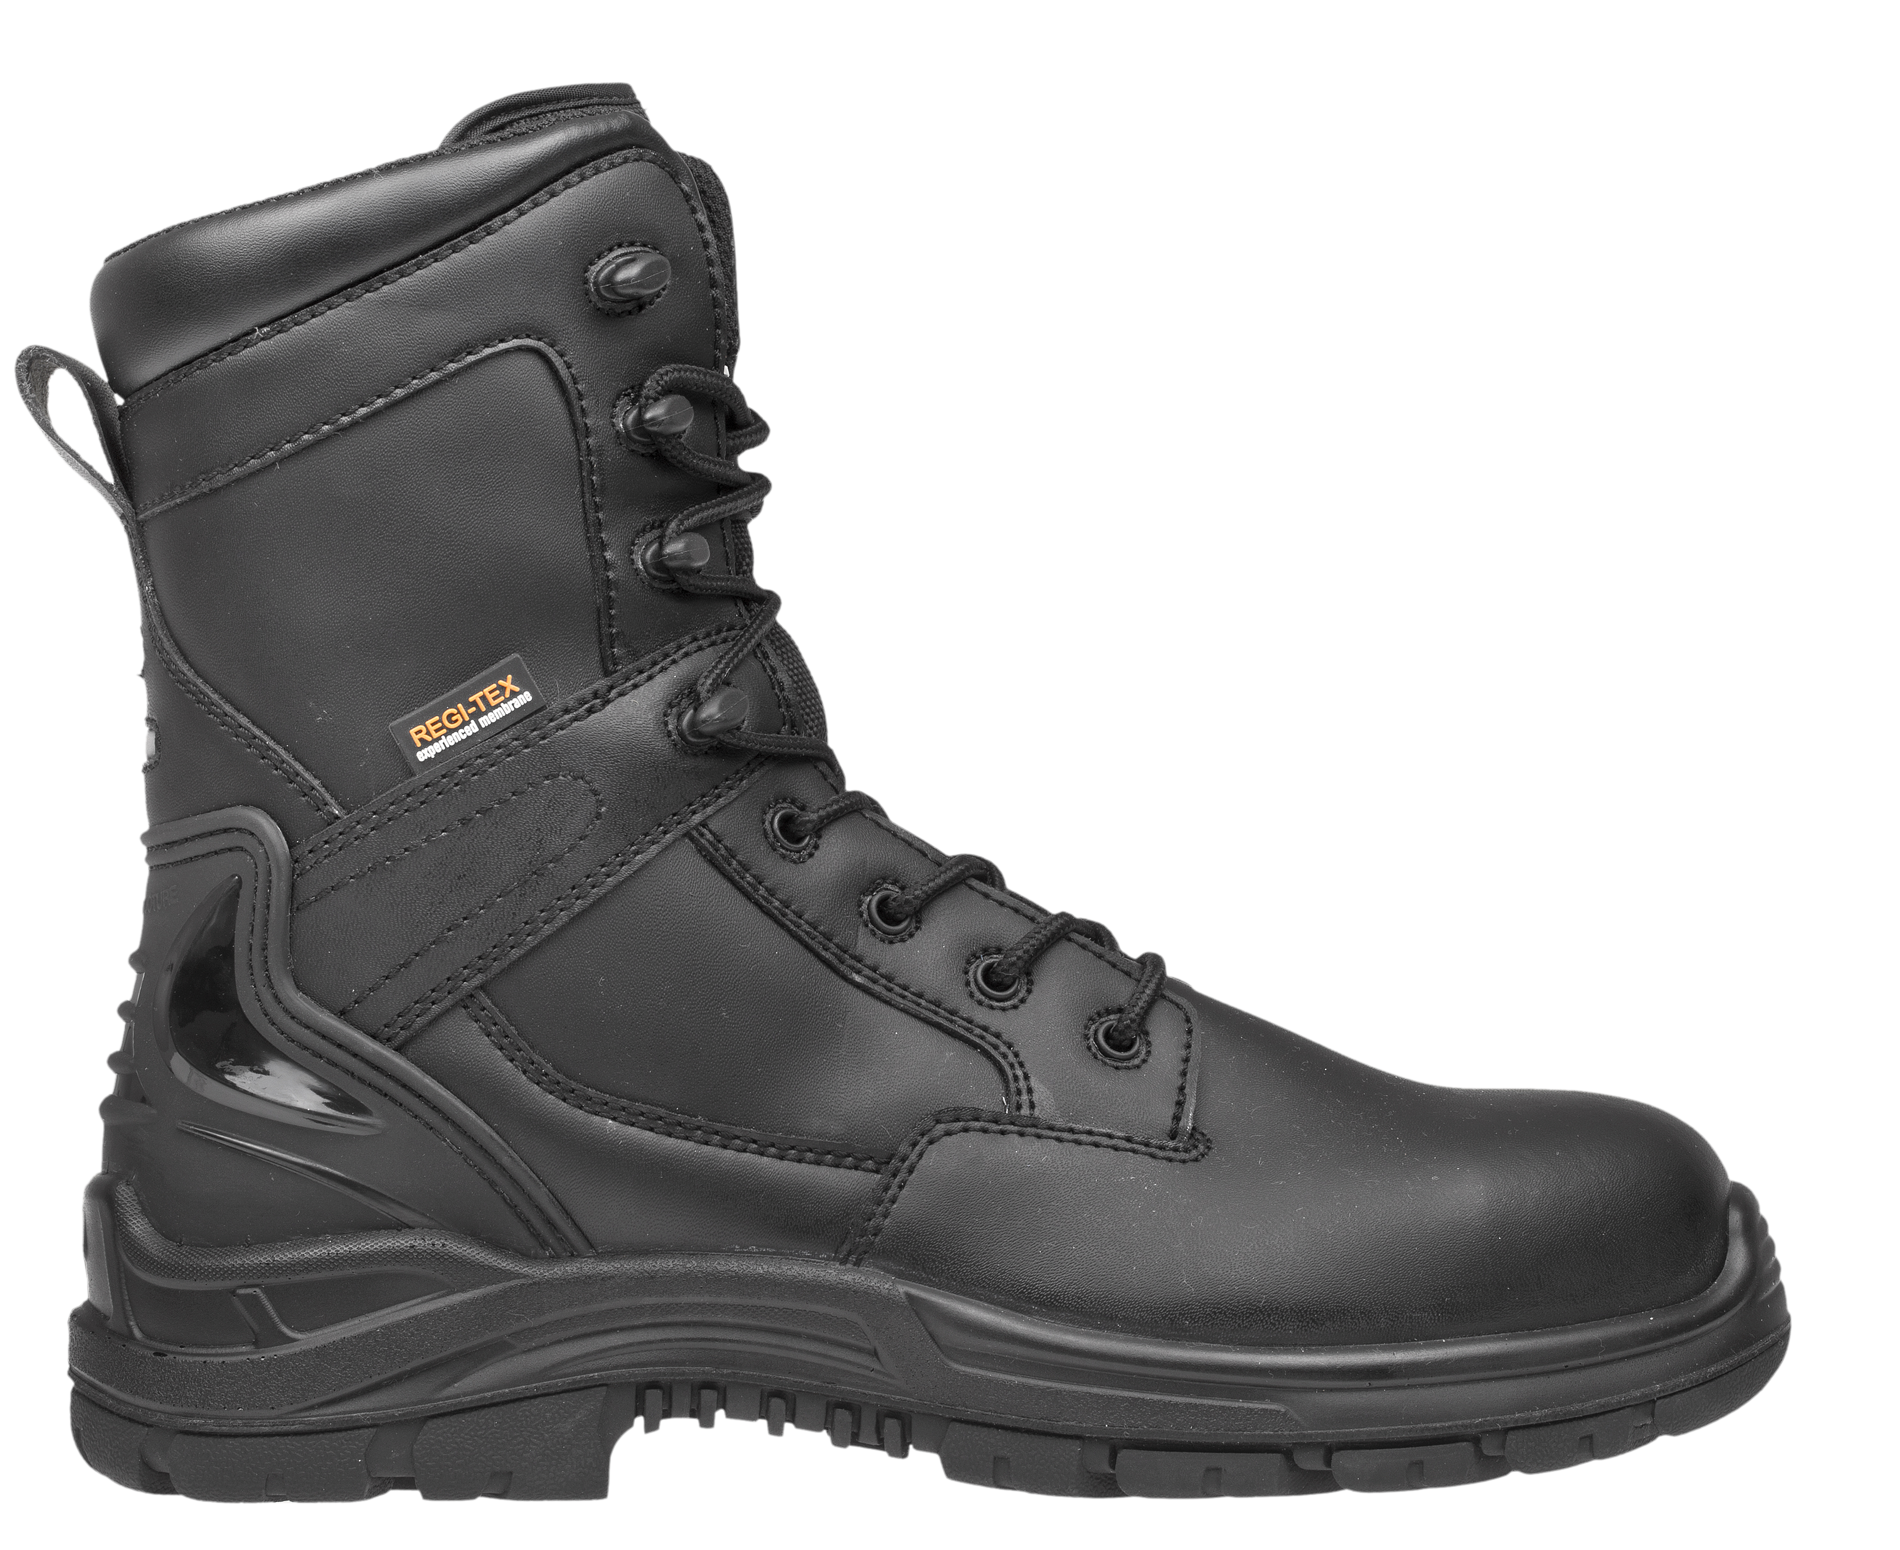 BENNON - BNN COMMODORE S3 NON METALLIC BOOT